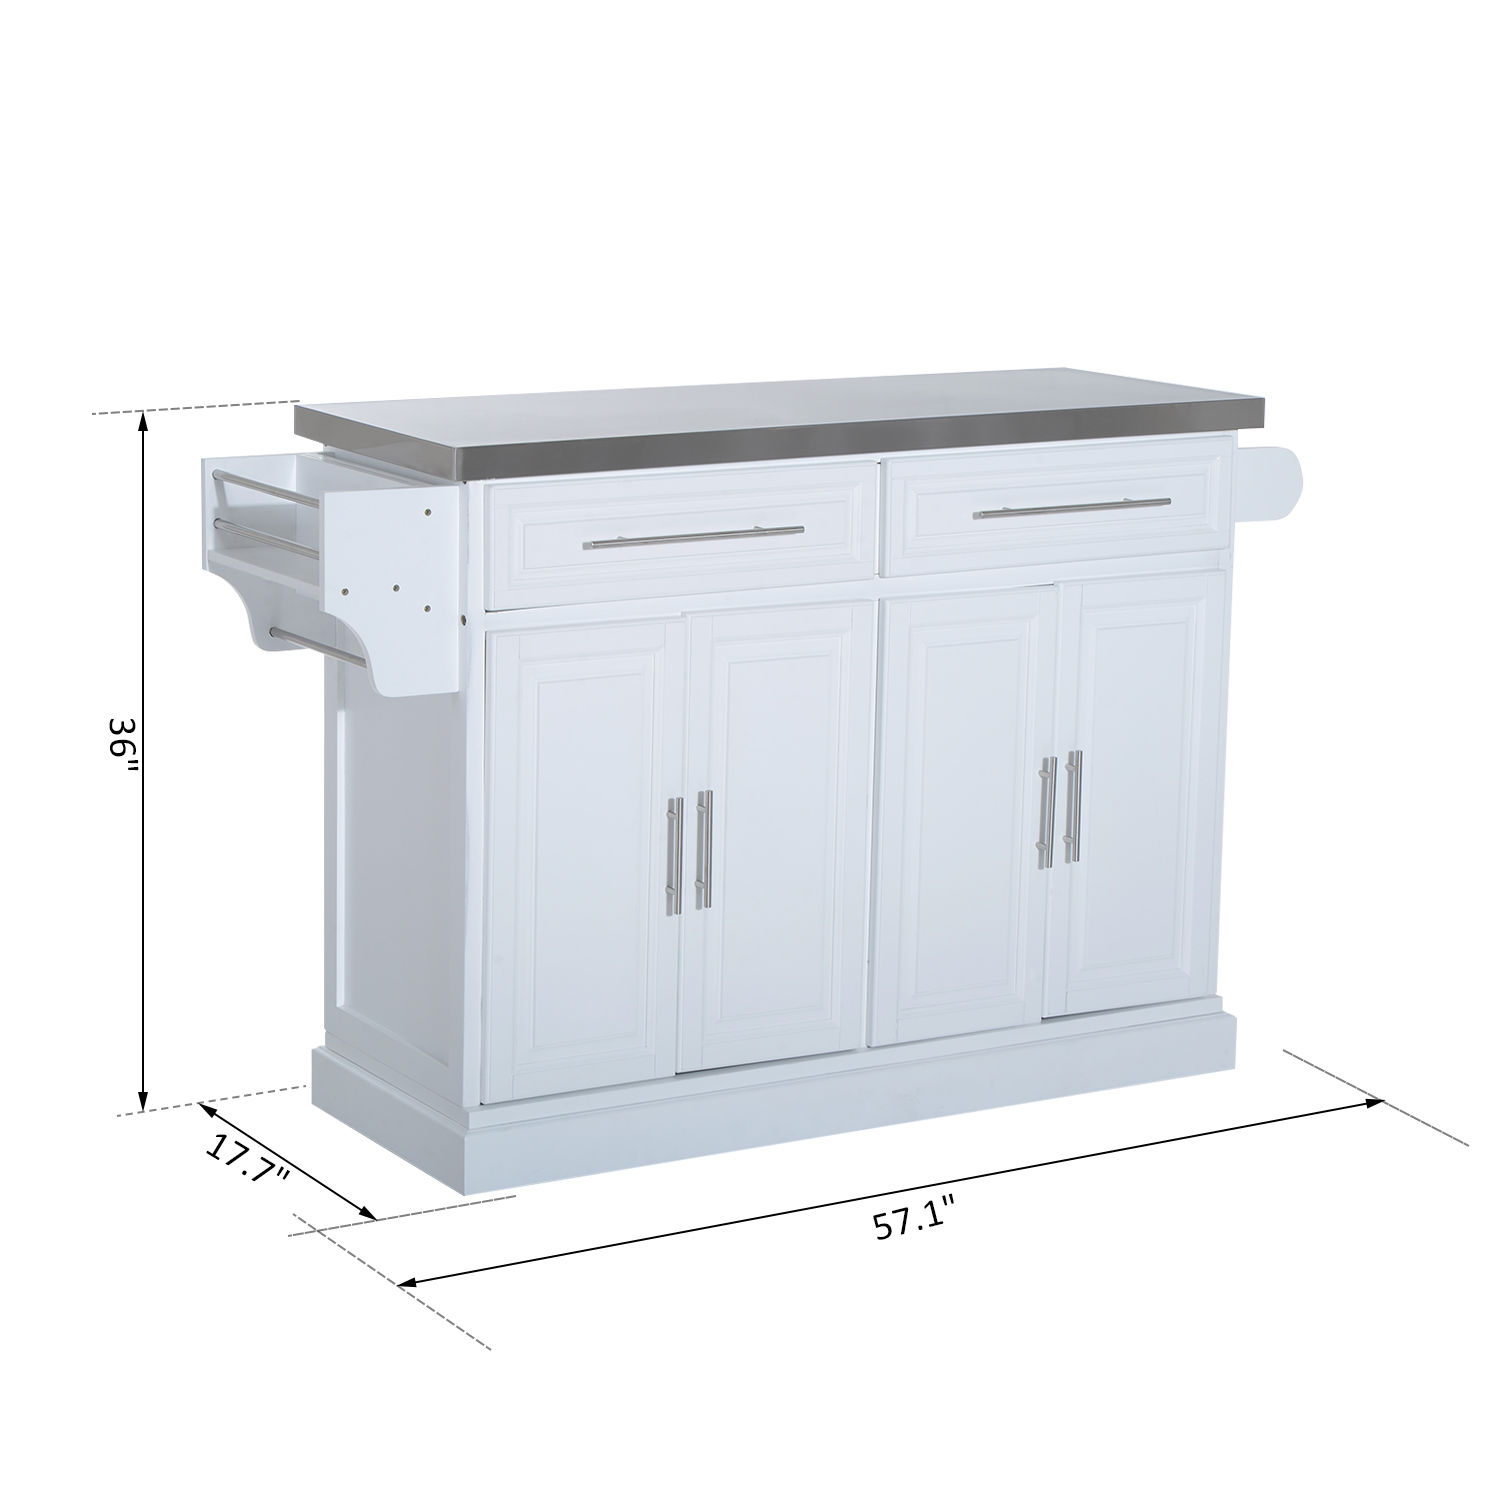 Stainless Kitchen Cabinet: Kitchen Island Cart Rolling Cabinet Stainless Steel Top W